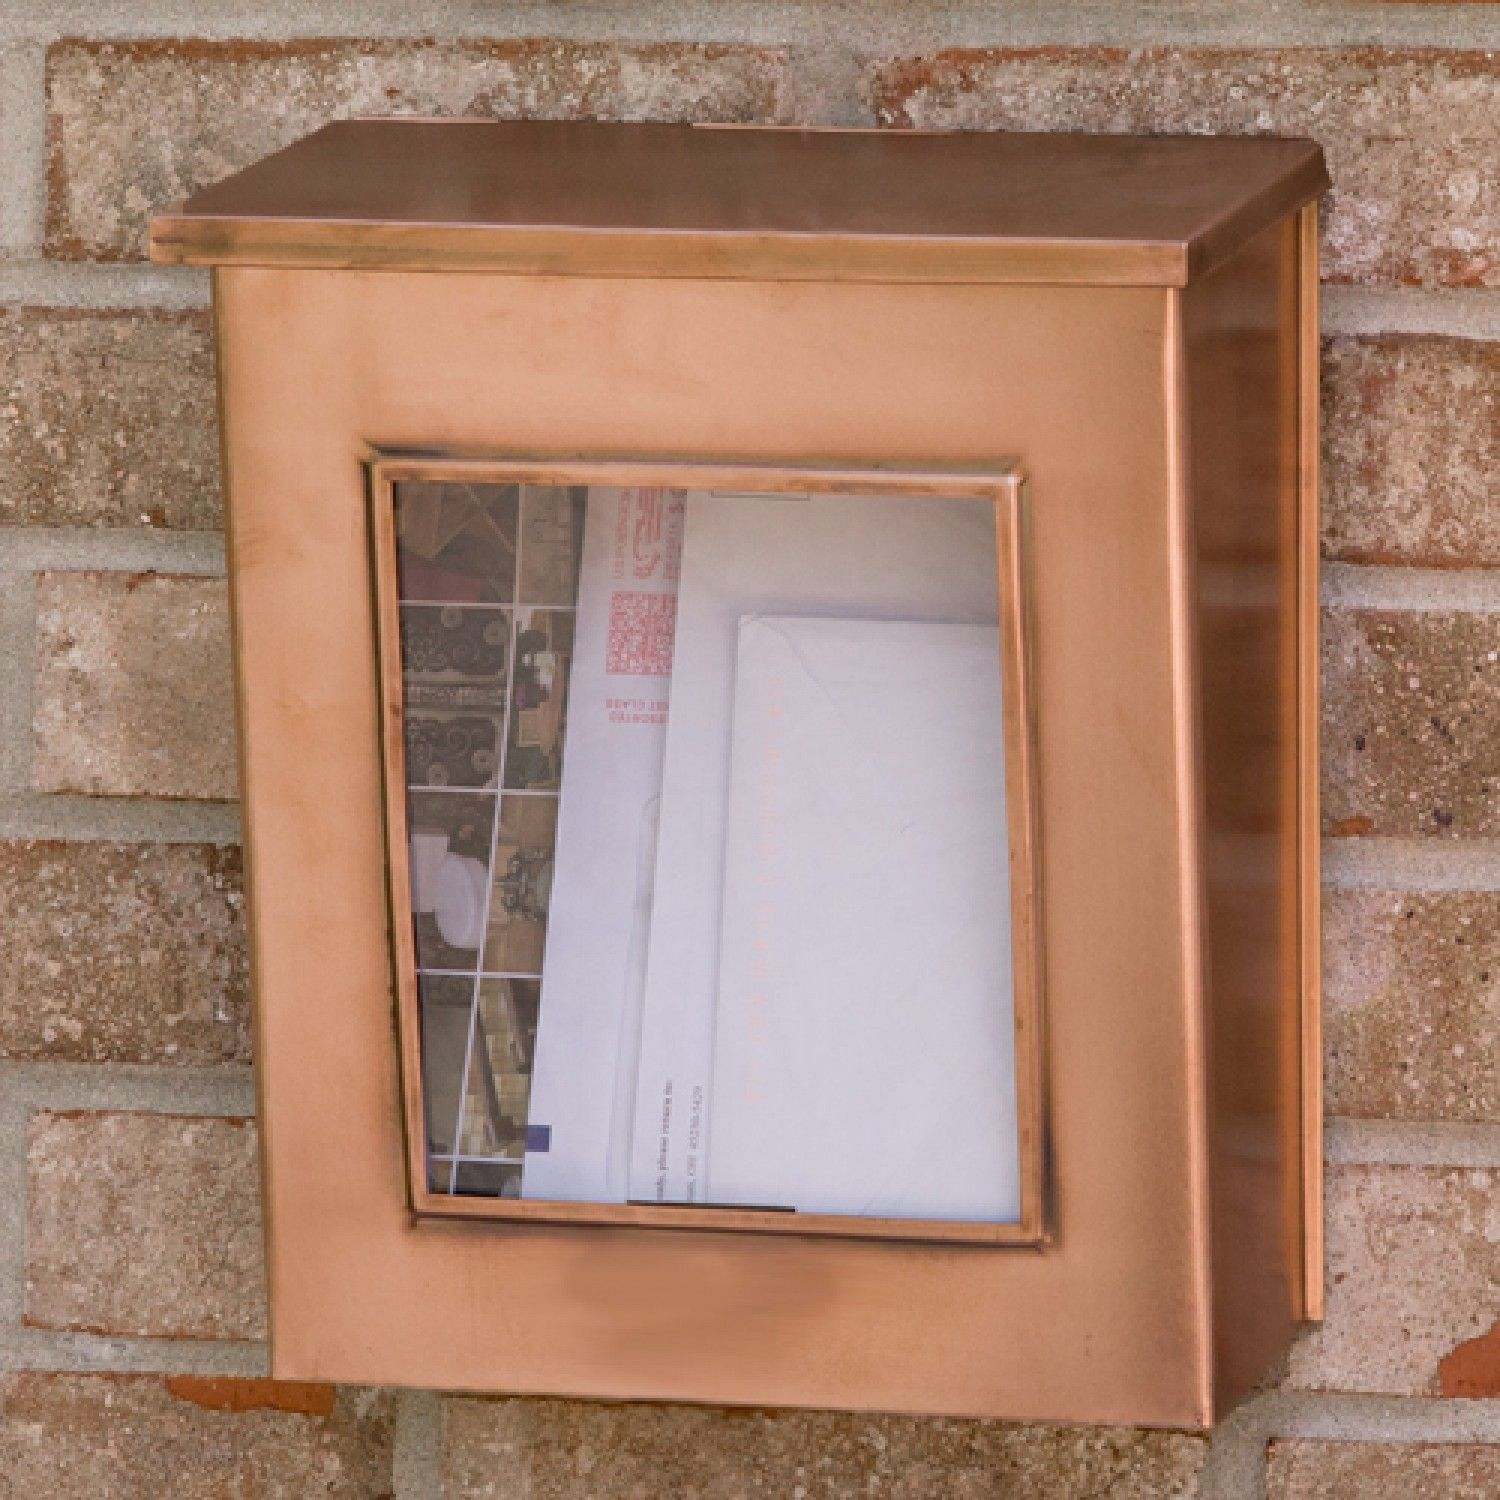 Vertical Wall Mount Copper Mailbox With Viewing Panel Antique Copper Mailboxes And Slots Outdoor Copper Mailbox Wall Mount Mailbox Mounted Mailbox